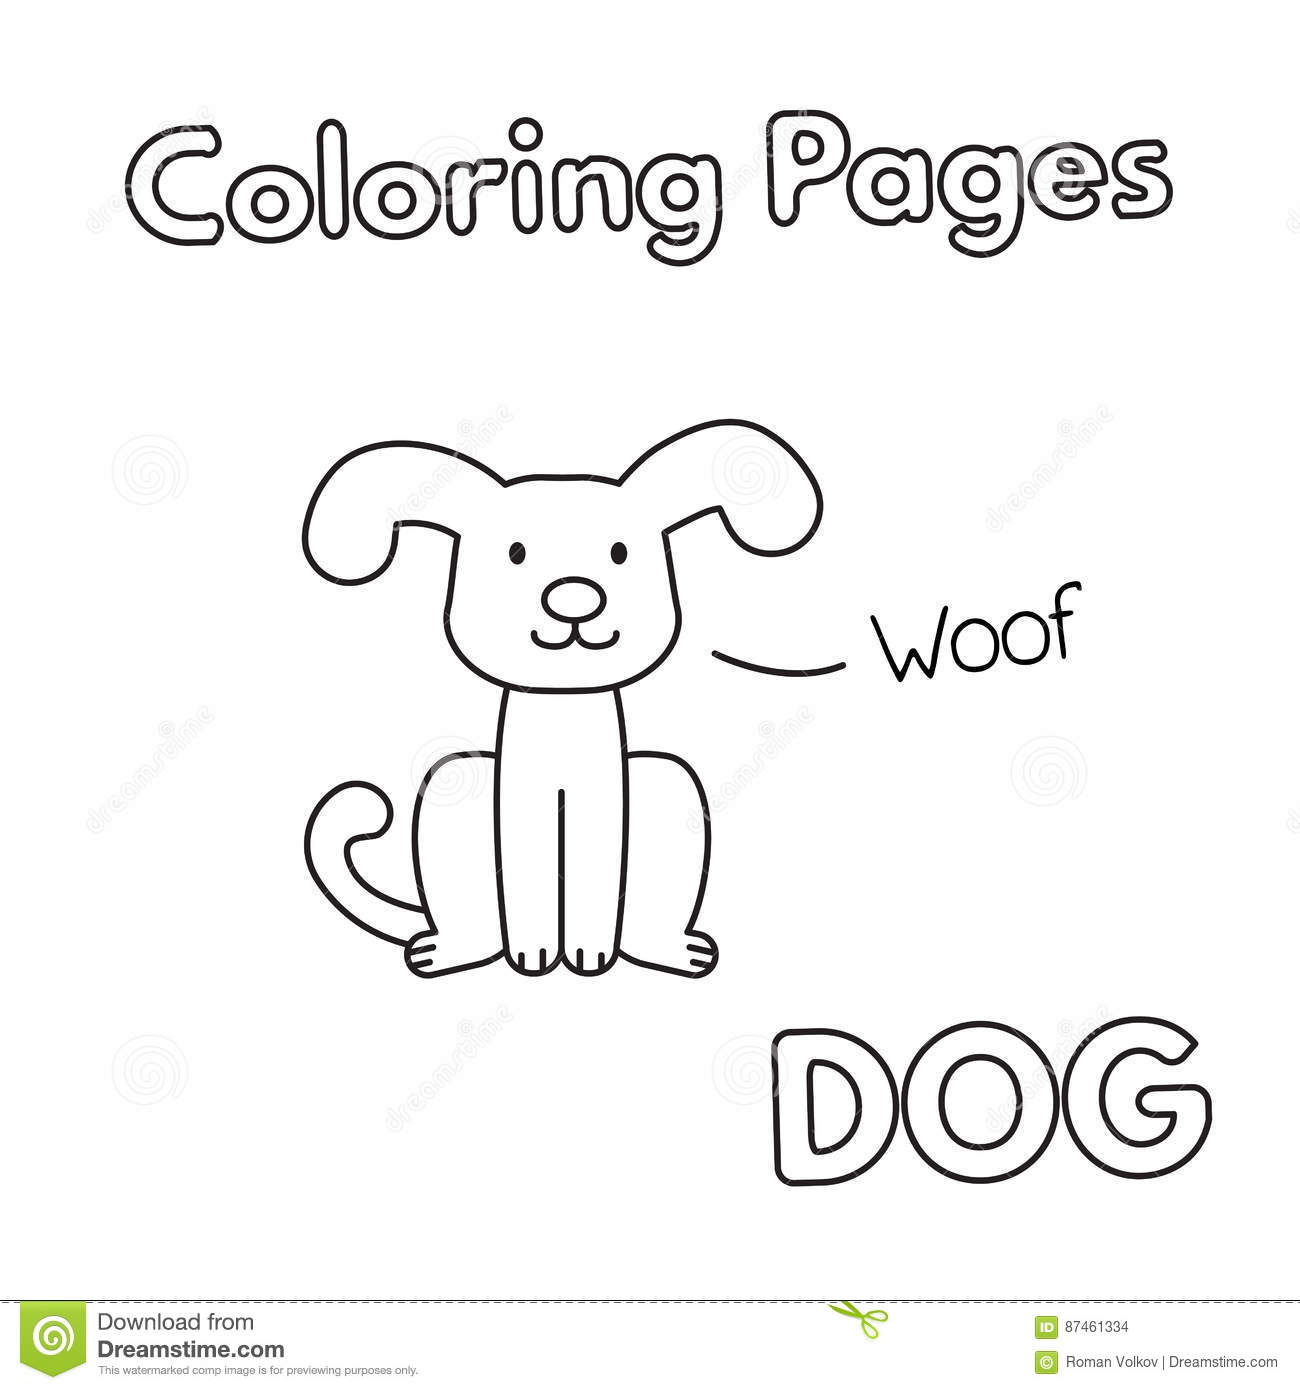 Free Printable Dog Coloring Pages For Kids | 1390x1300